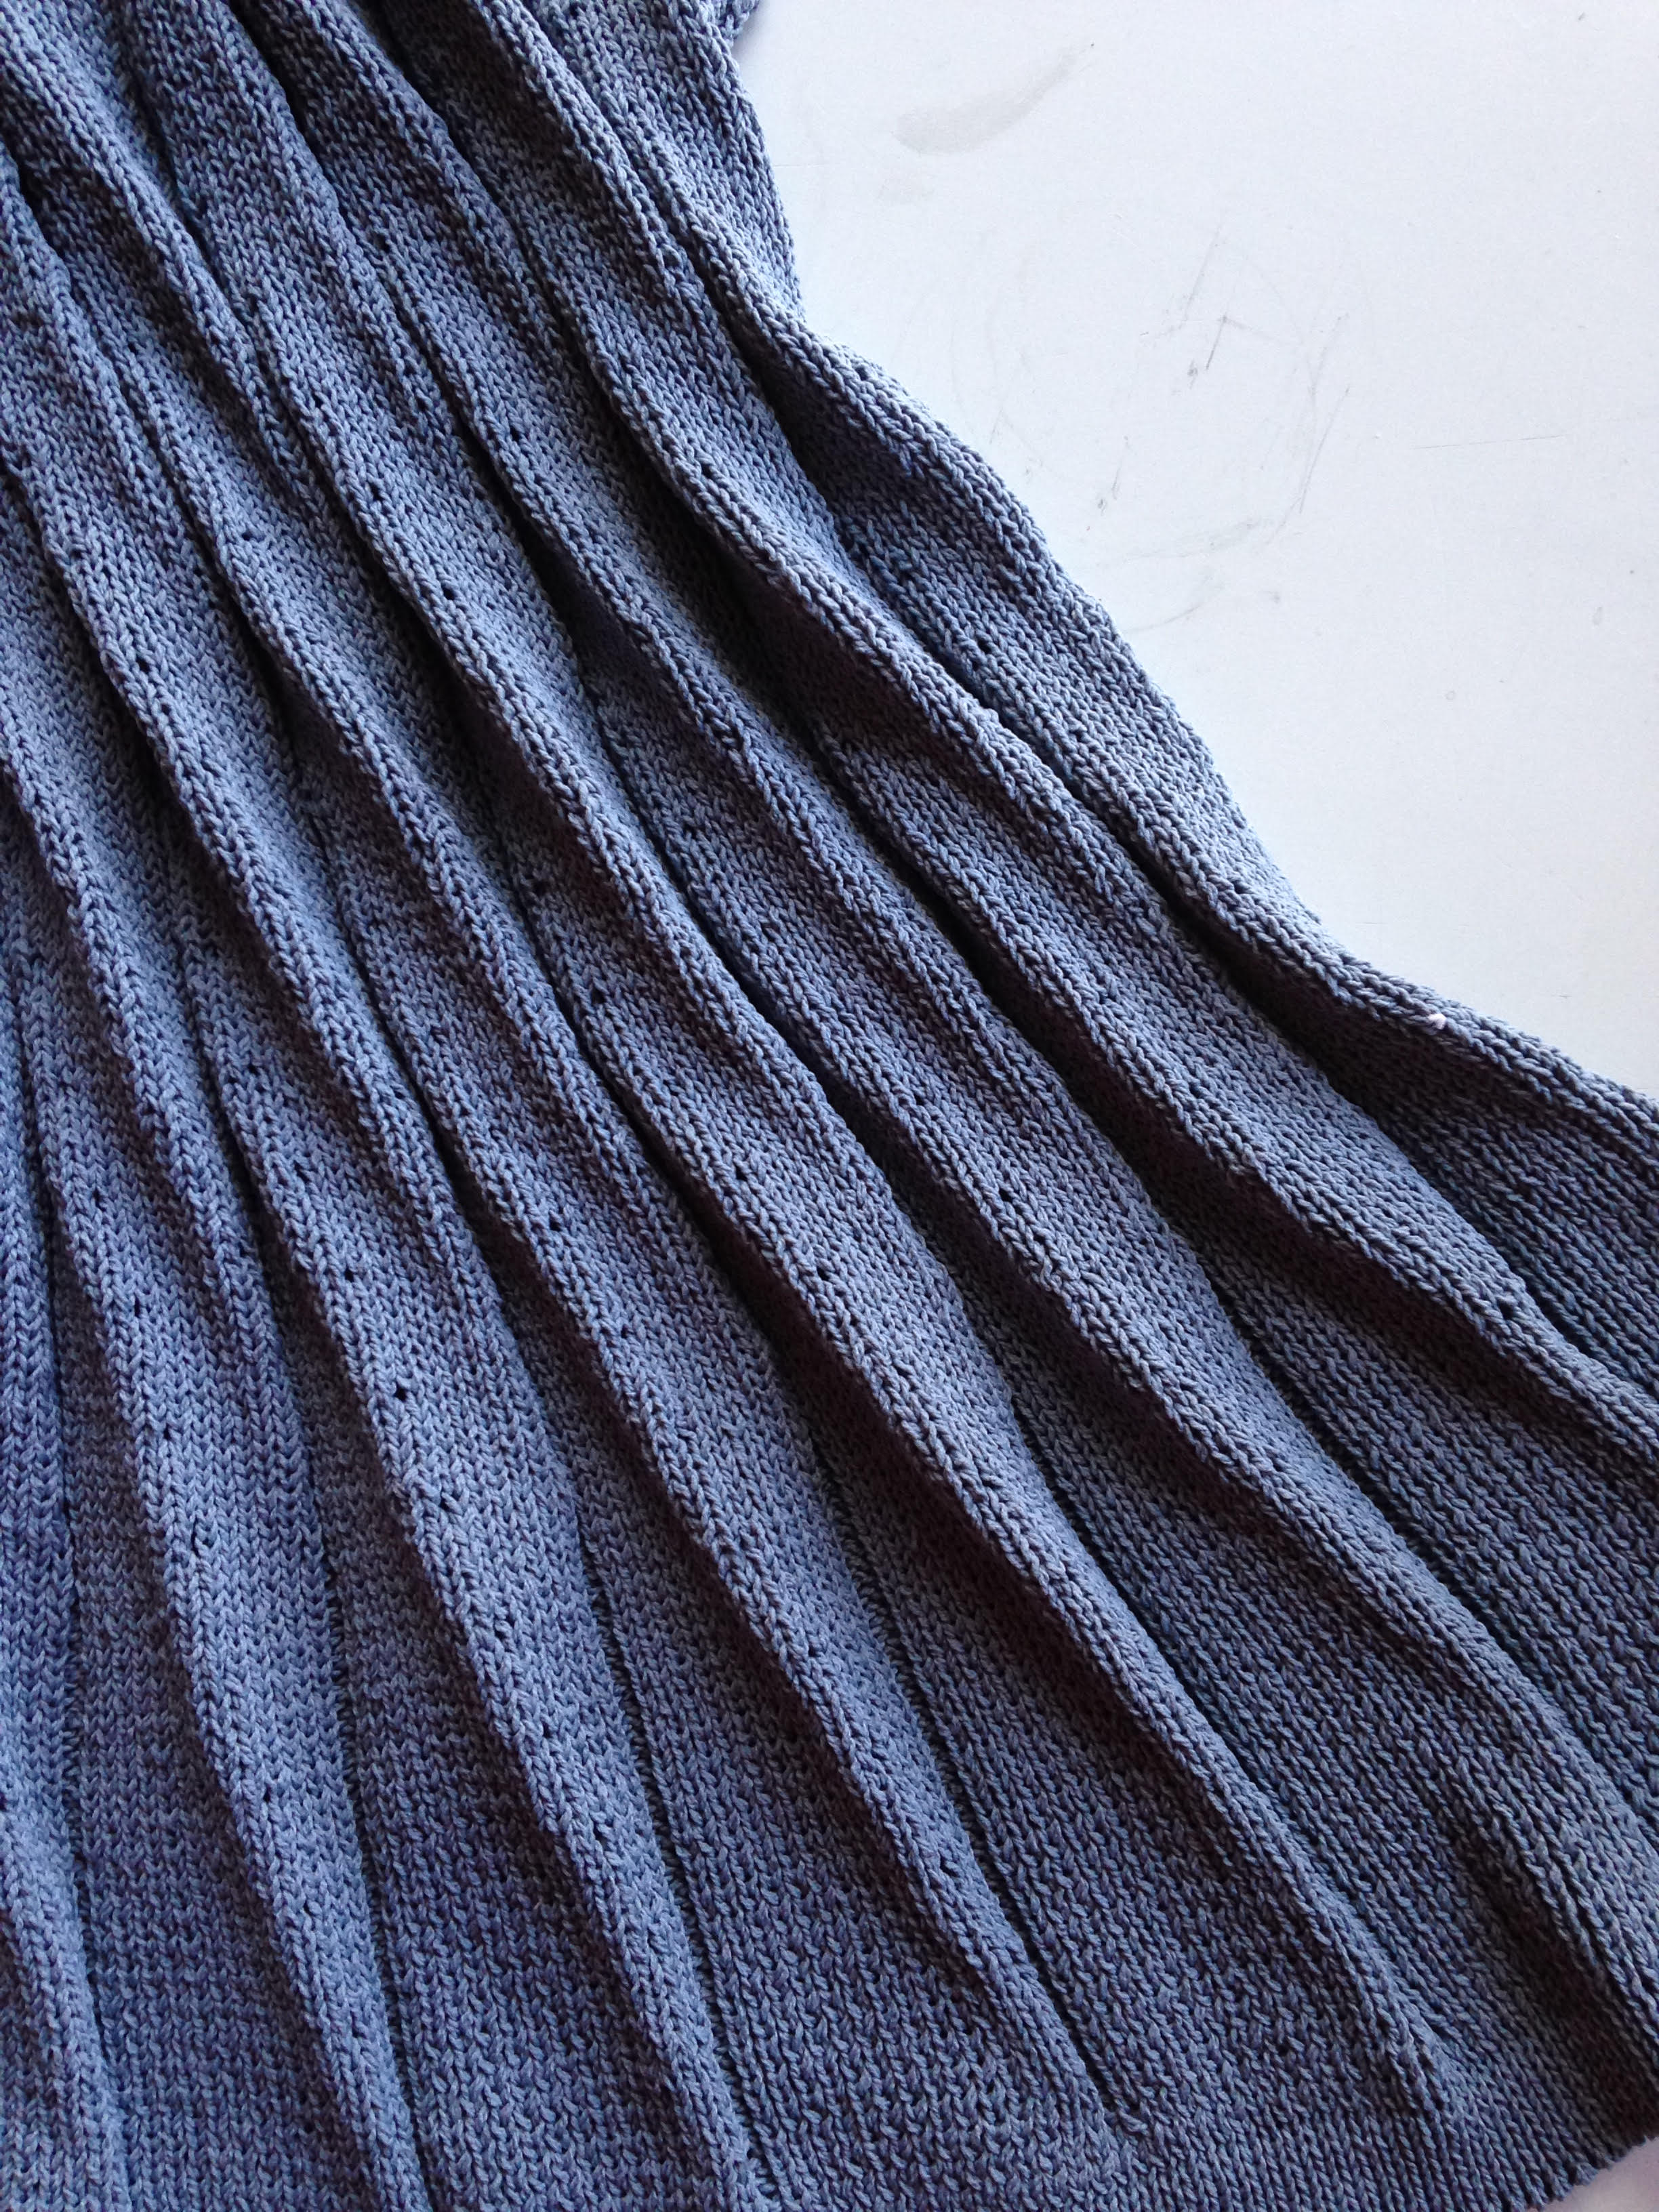 pleat blue.jpg